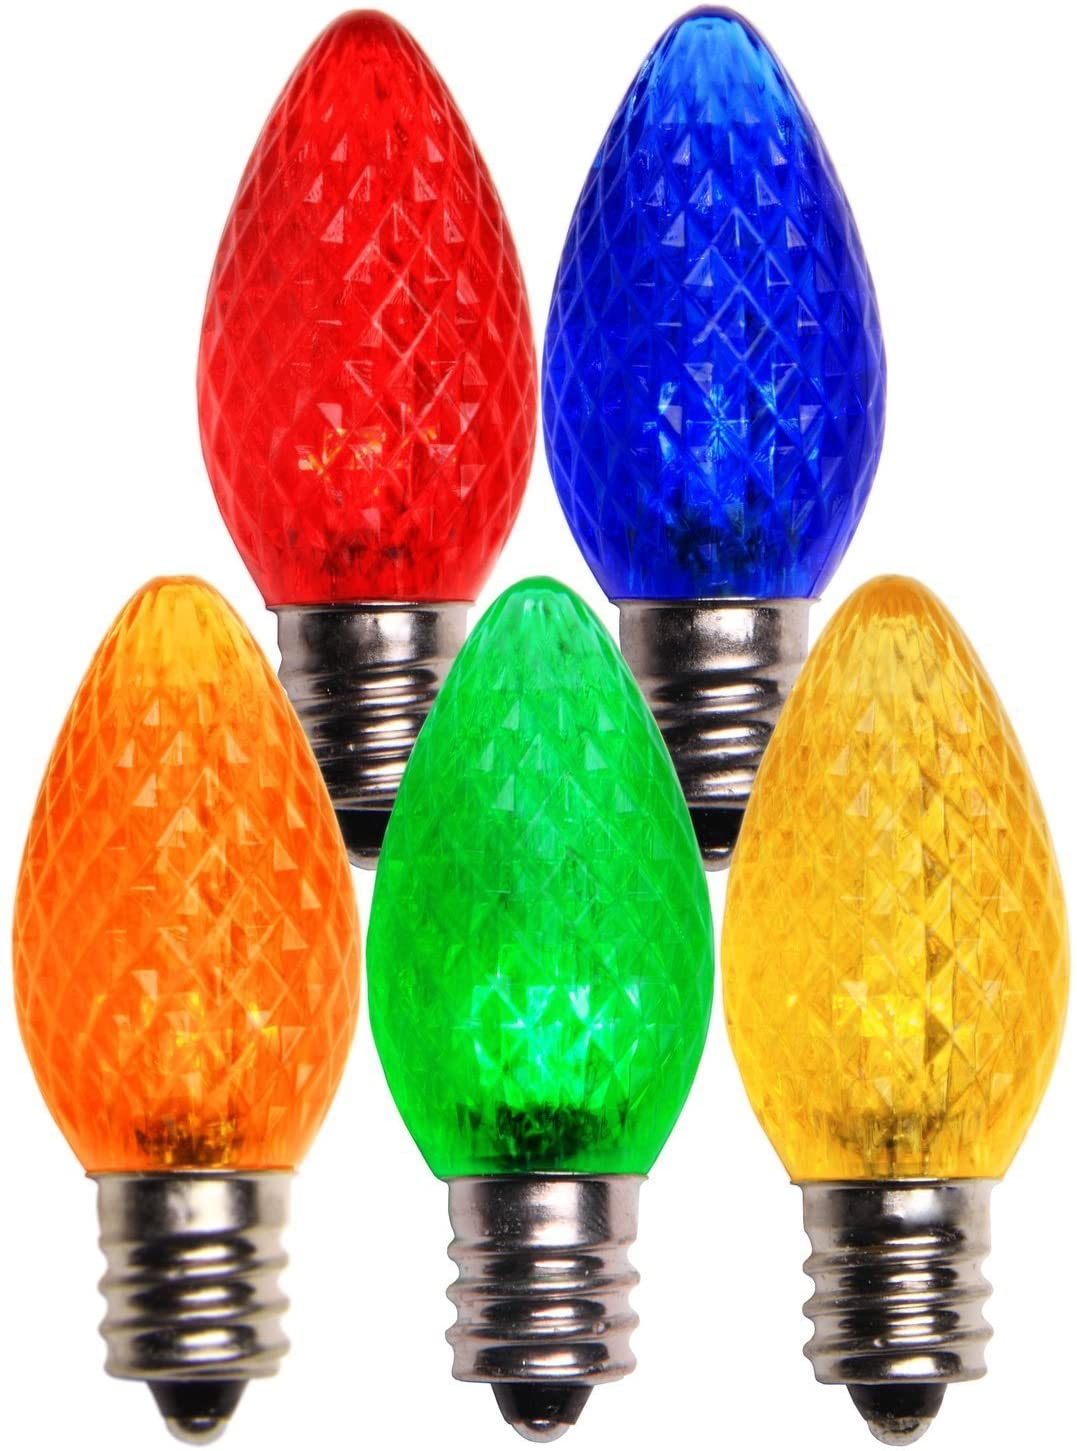 Minleon LED C7 Replacement Christmas and Holiday Light Bulbs, Commercial Grade, E12 Sockets (500, Multi-Color)